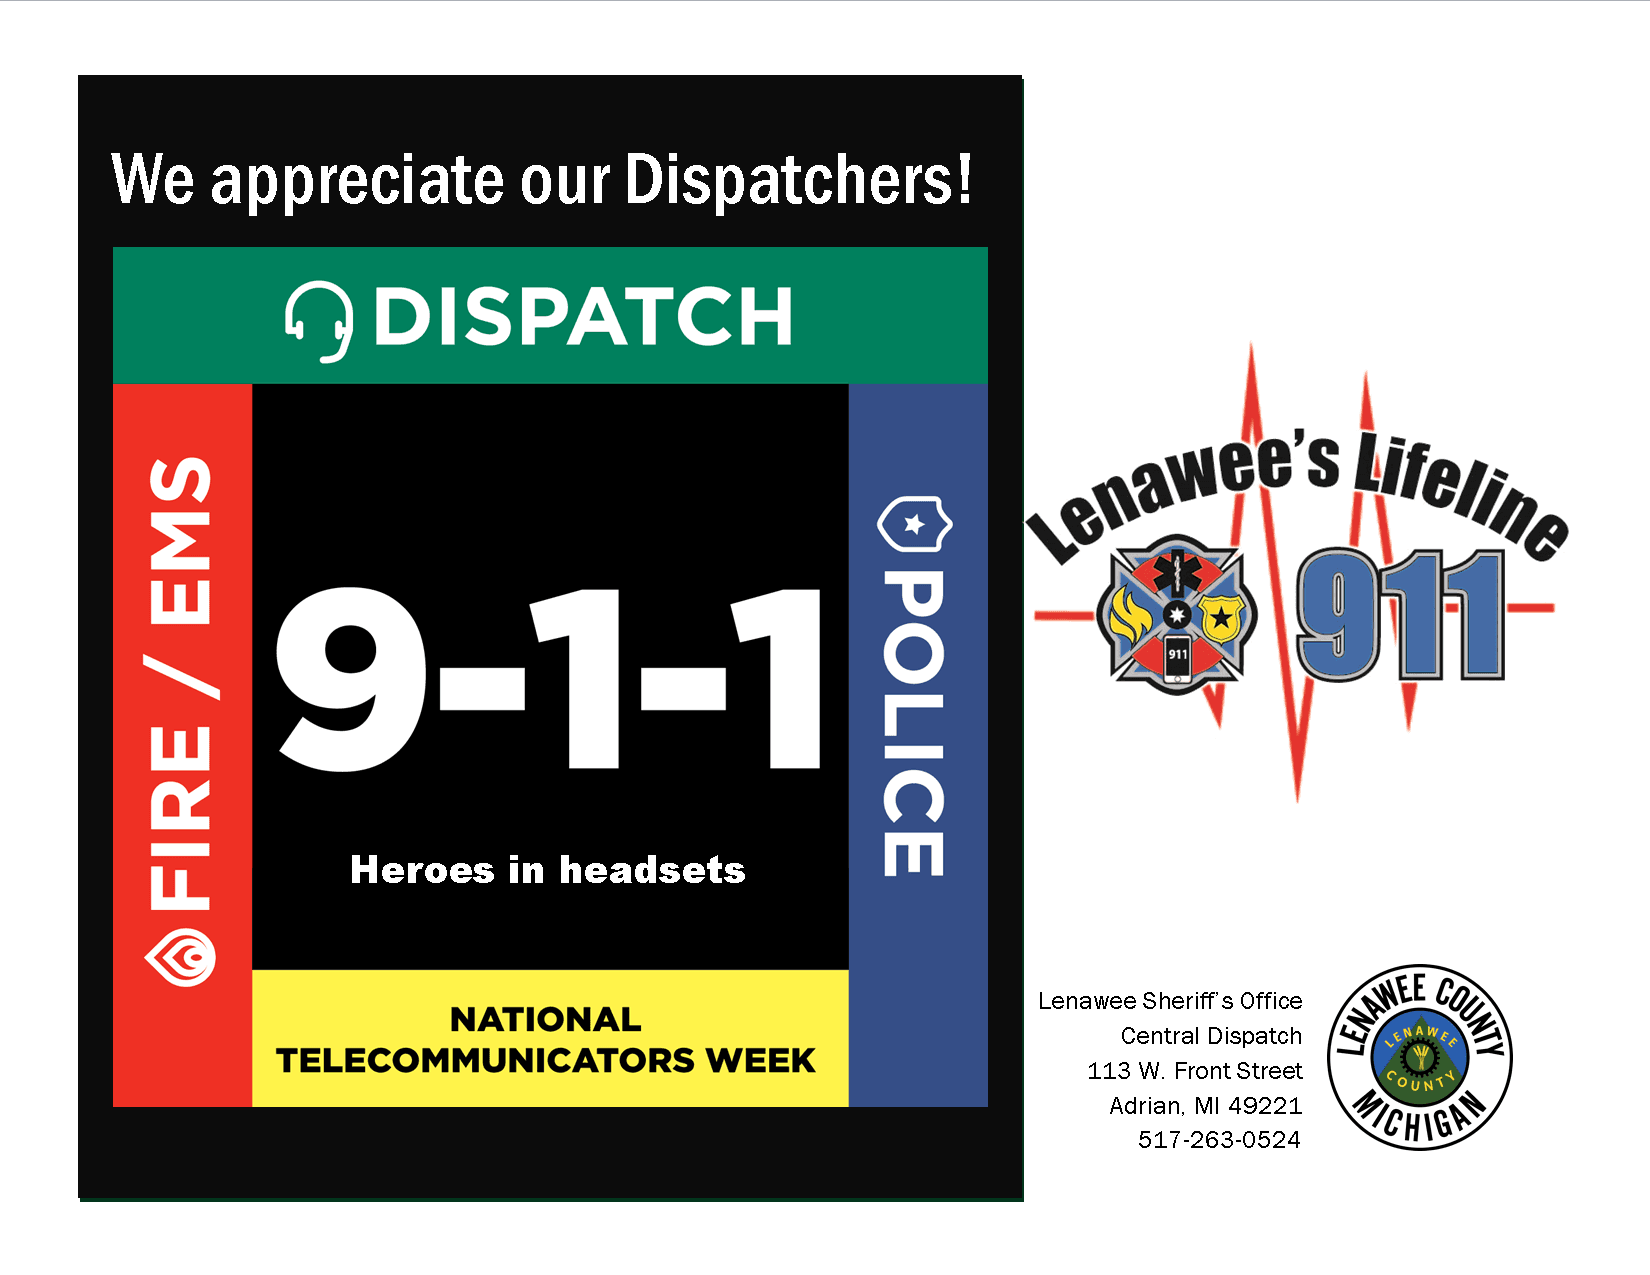 Dispatch week